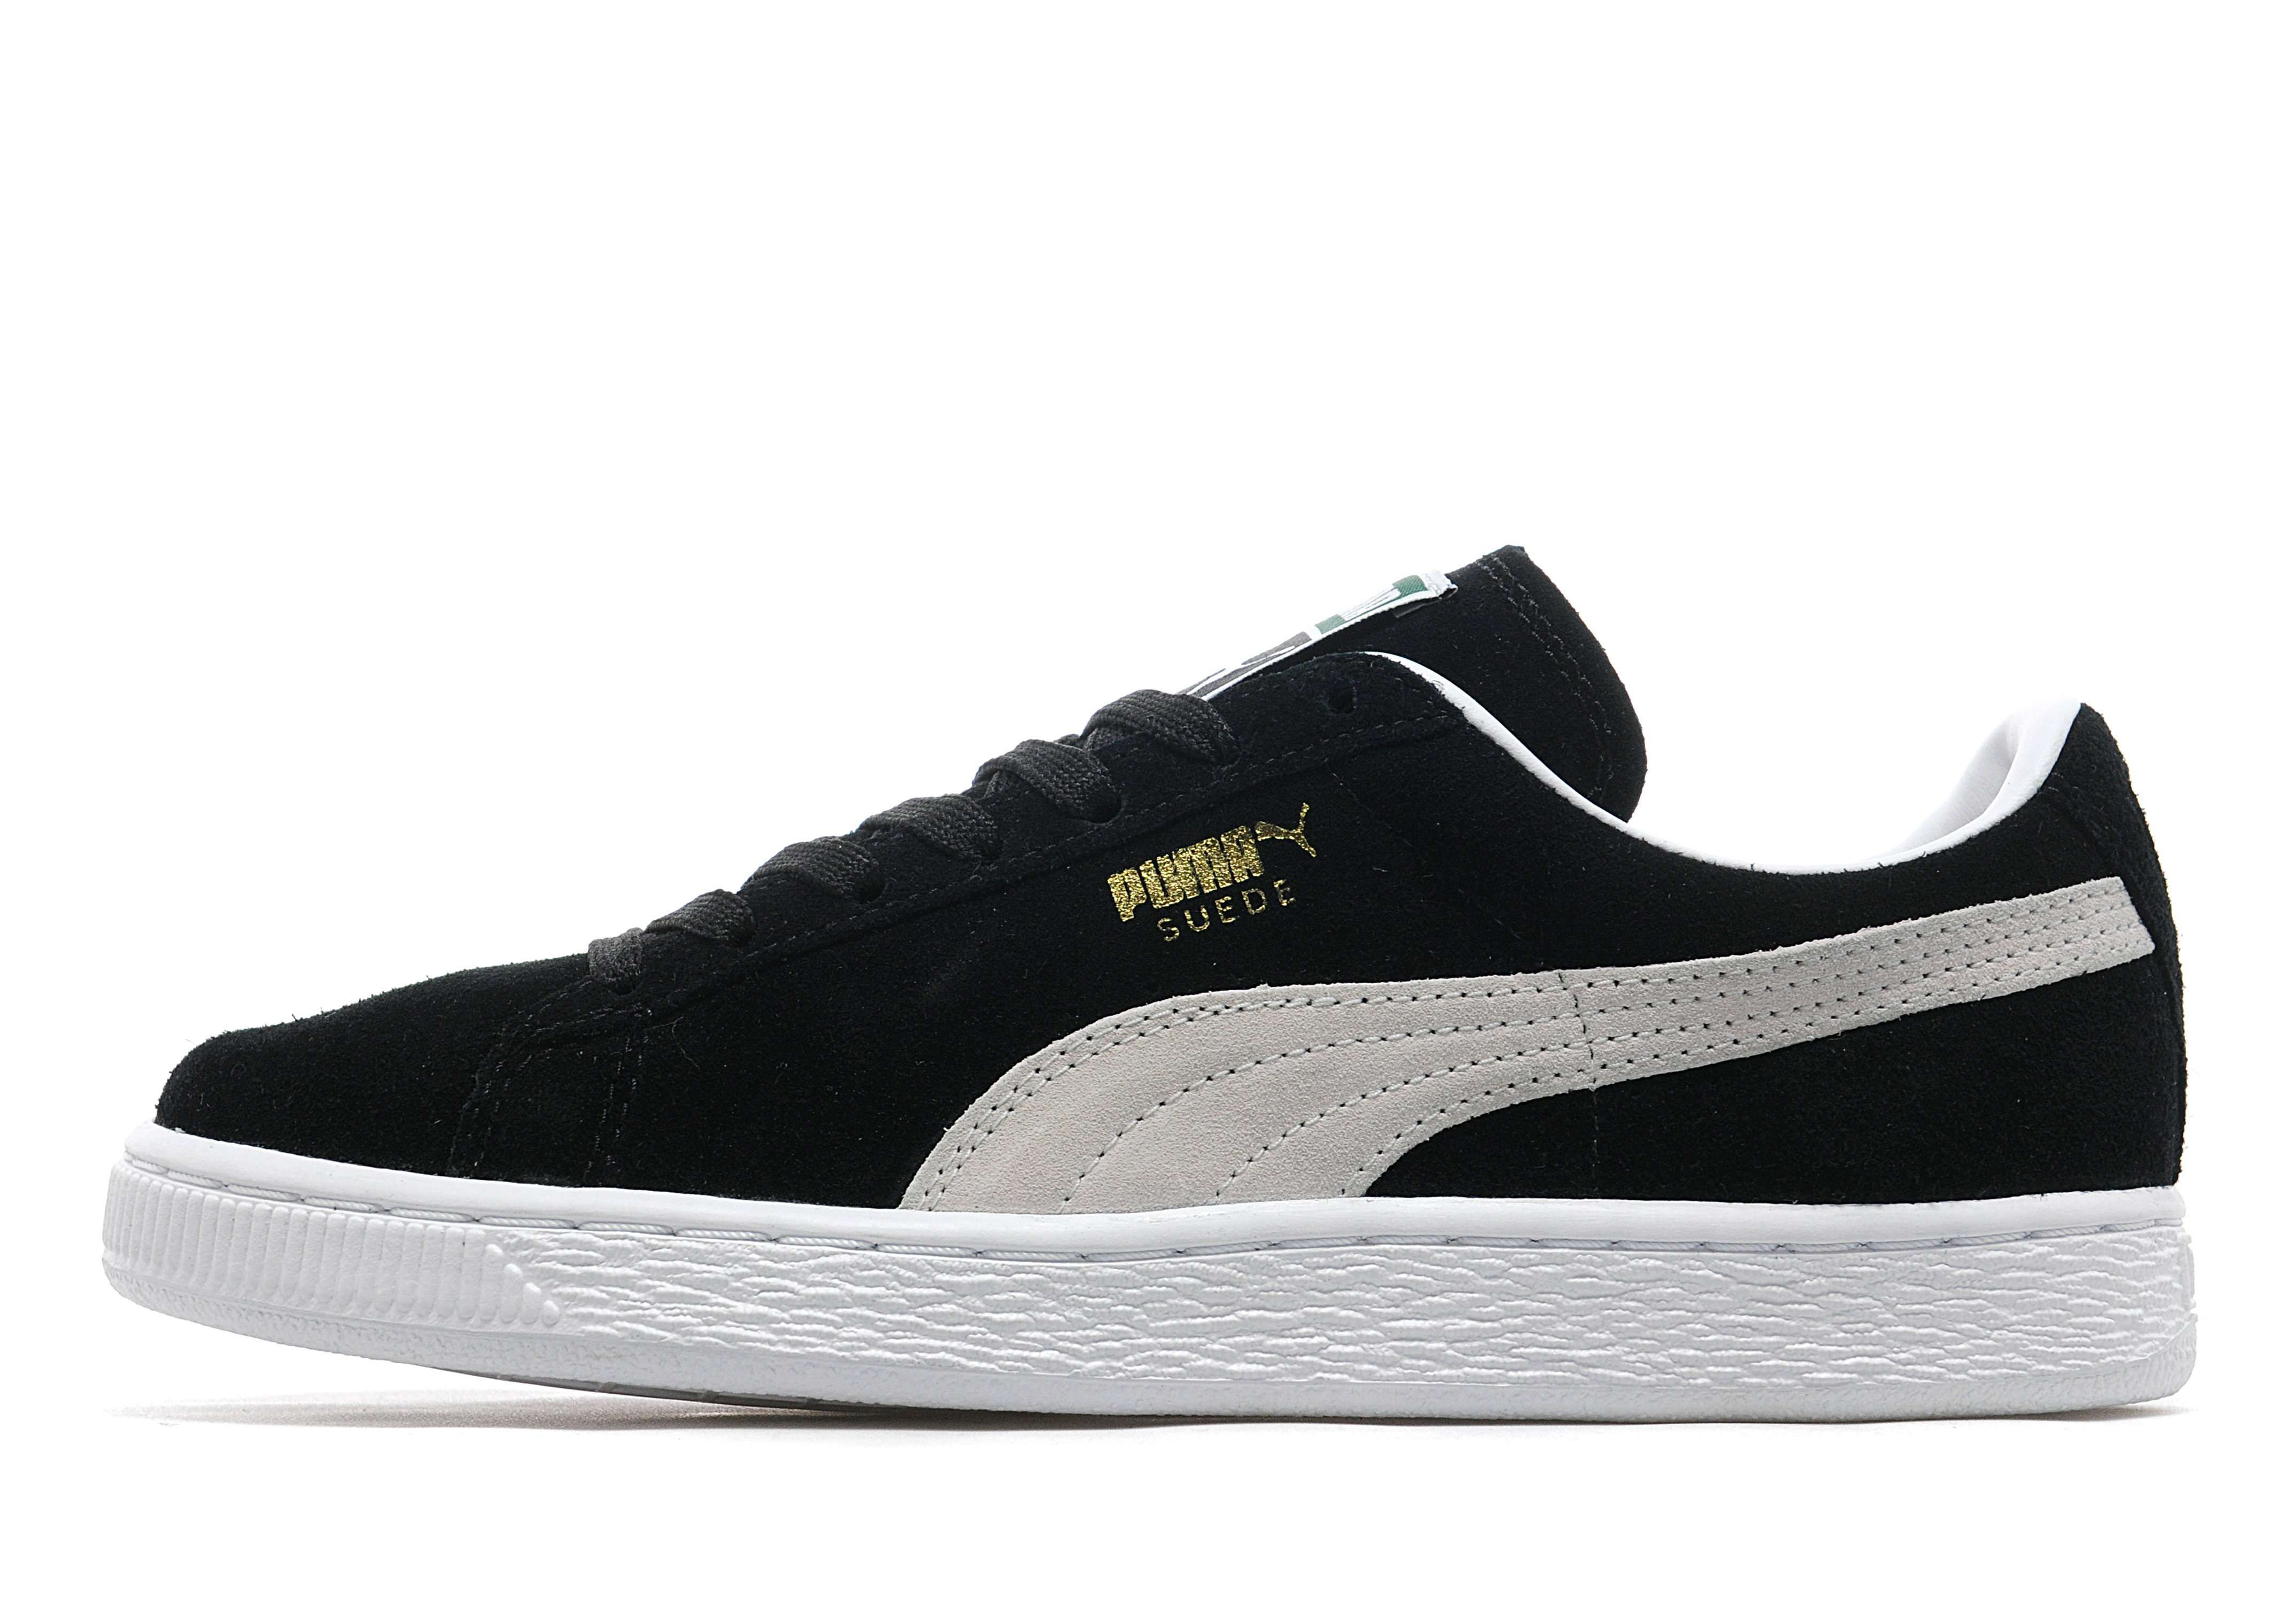 Puma Suede Pf Júnior from Jd Sports on 21 Buttons